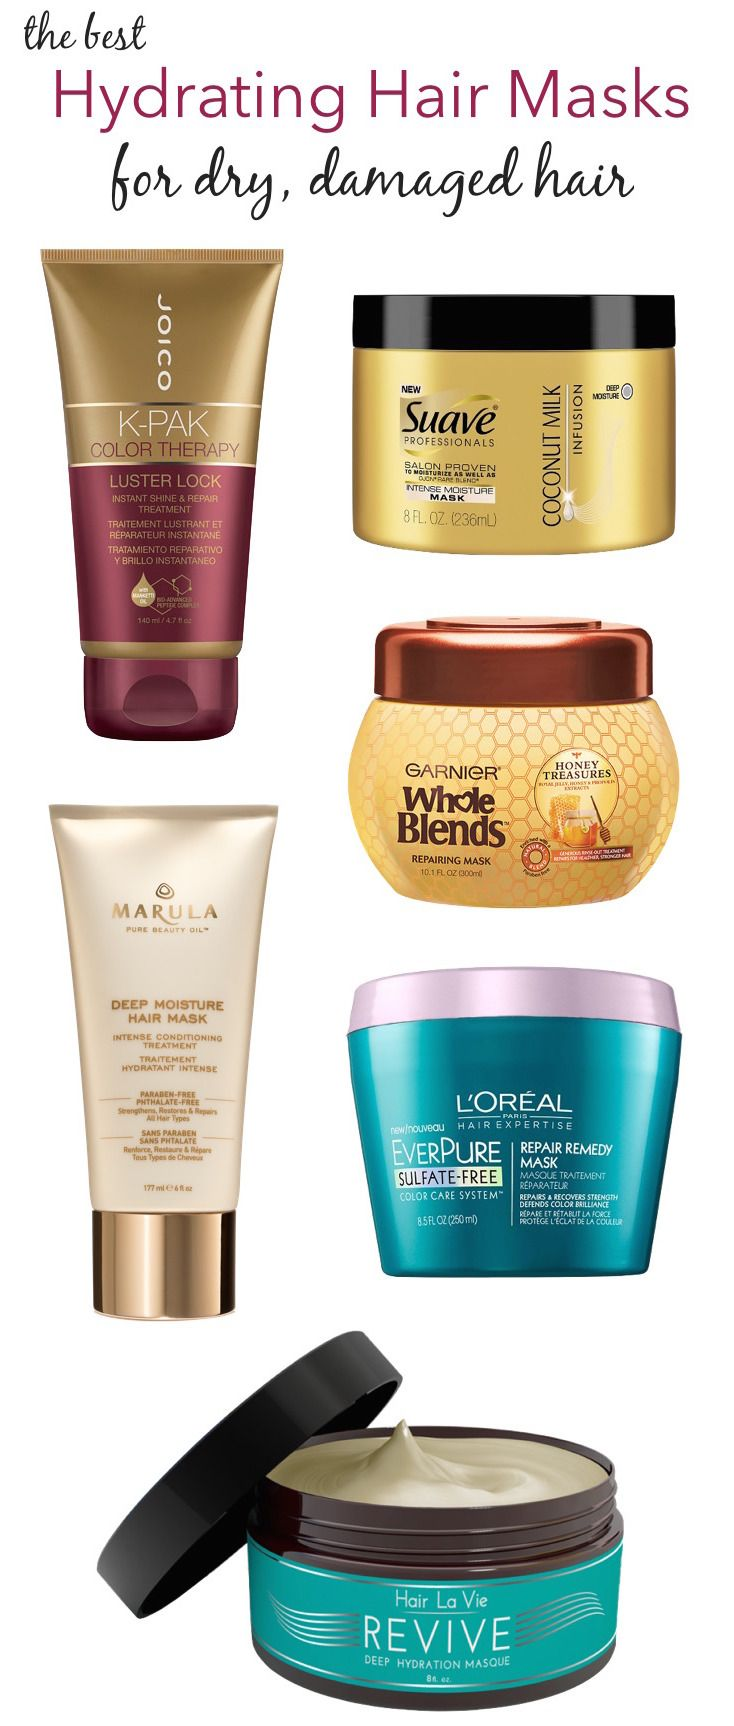 Need some deep treatment therapy for your sun-damaged strands? Click through to discover the mask that's right for your hair and budget!